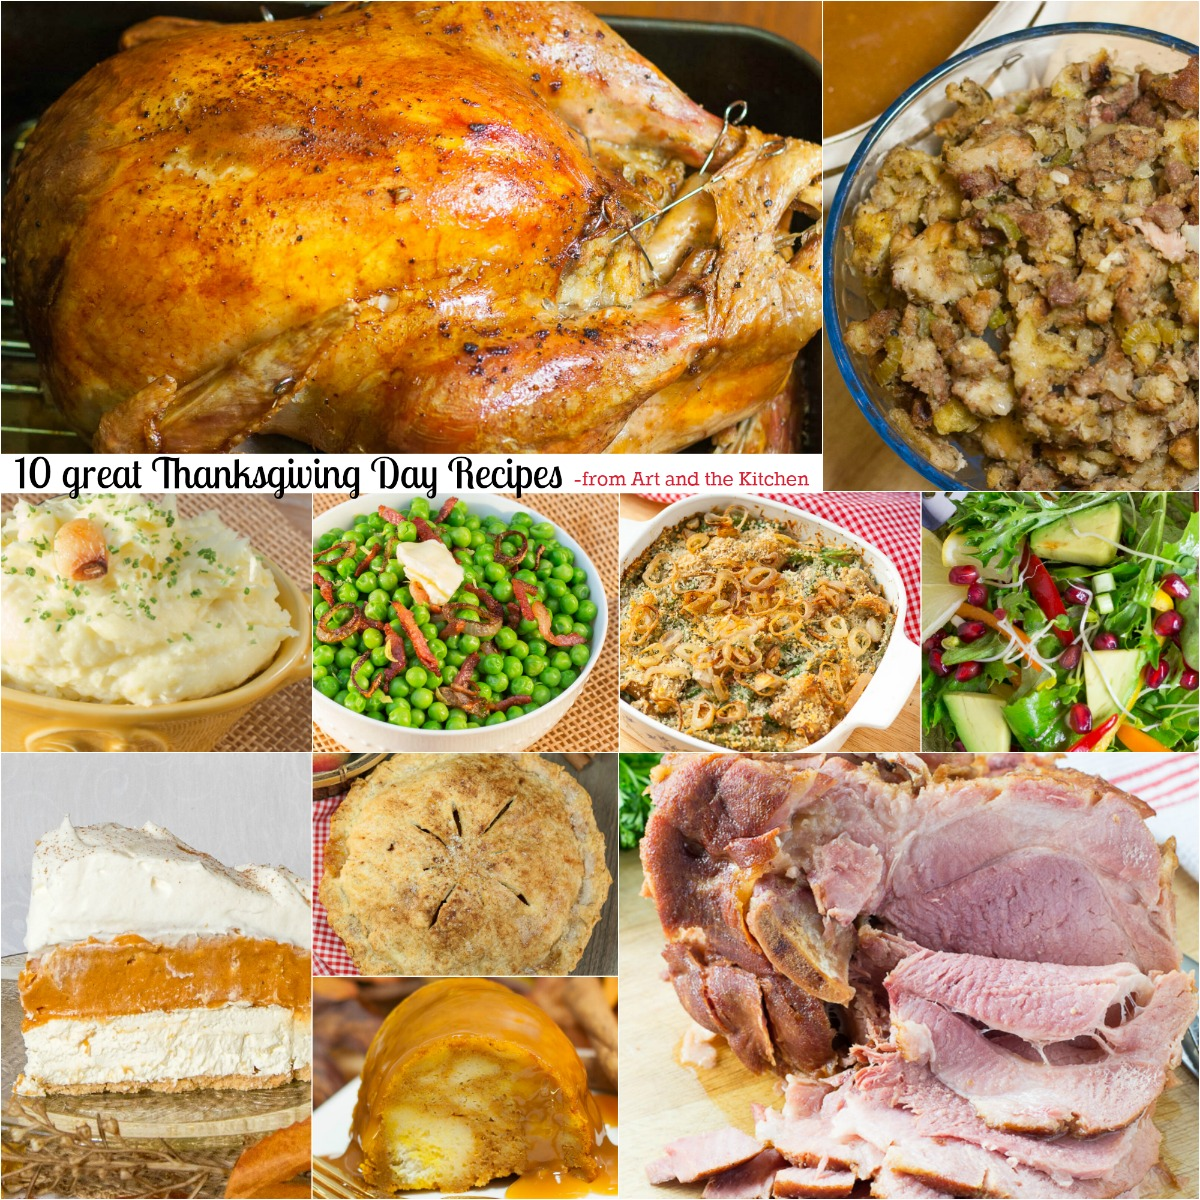 10 great Thanksgiving Day Recipes